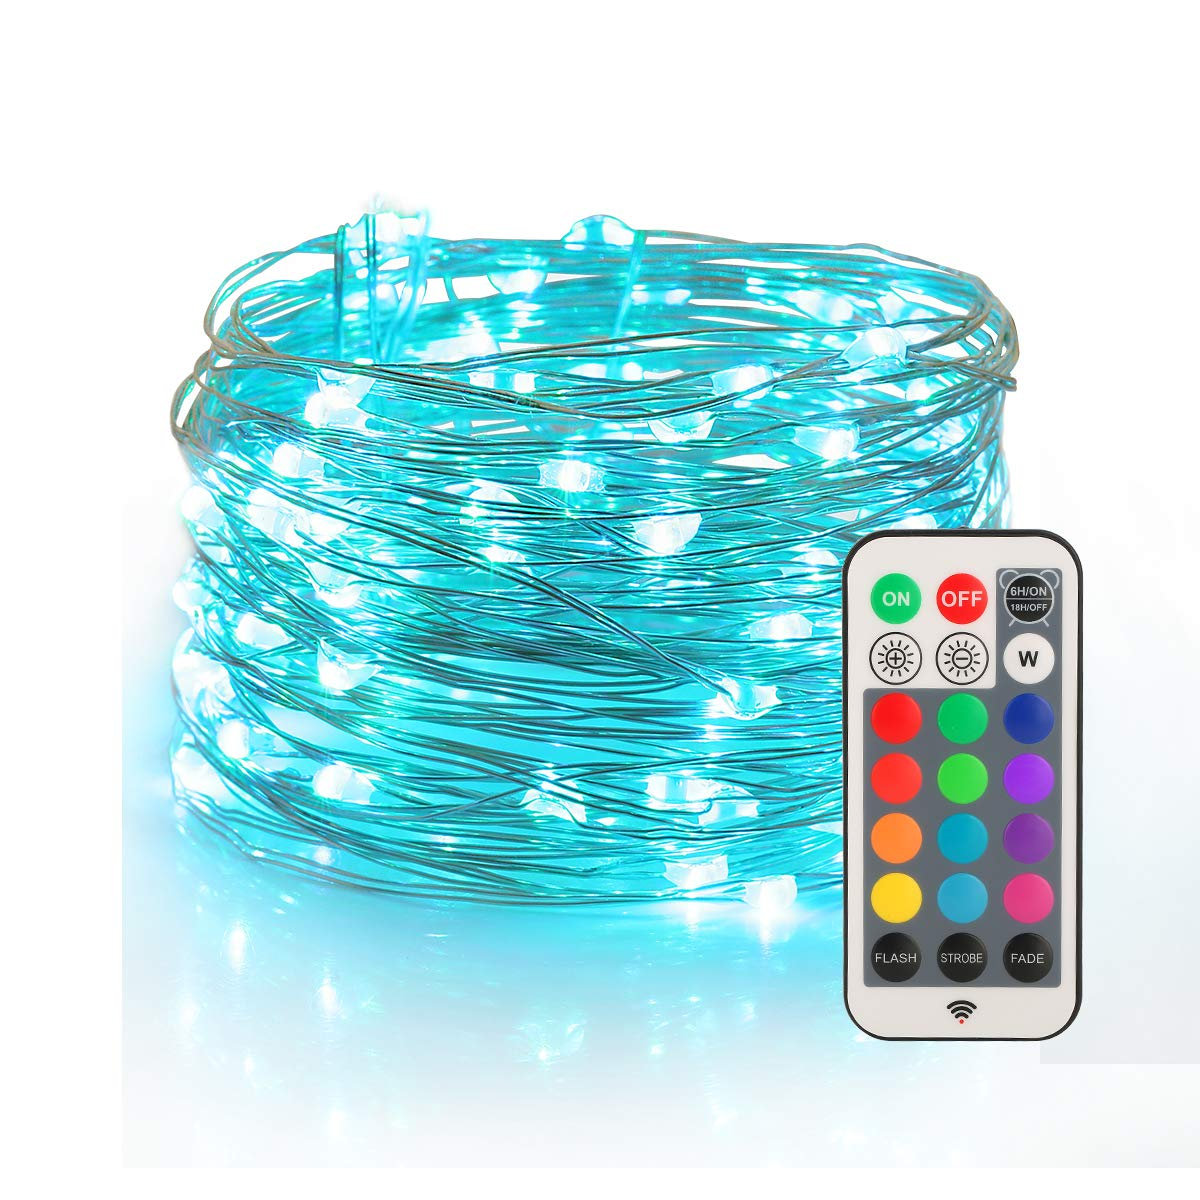 YIHONG Fairy String USB Plug-in Lights - 33ft Long Twinkle Lights - Color Change Firefly Lights with RF Remote - 13 Vibrant Colors - Fade Flash Strobe Modes by YIHONG